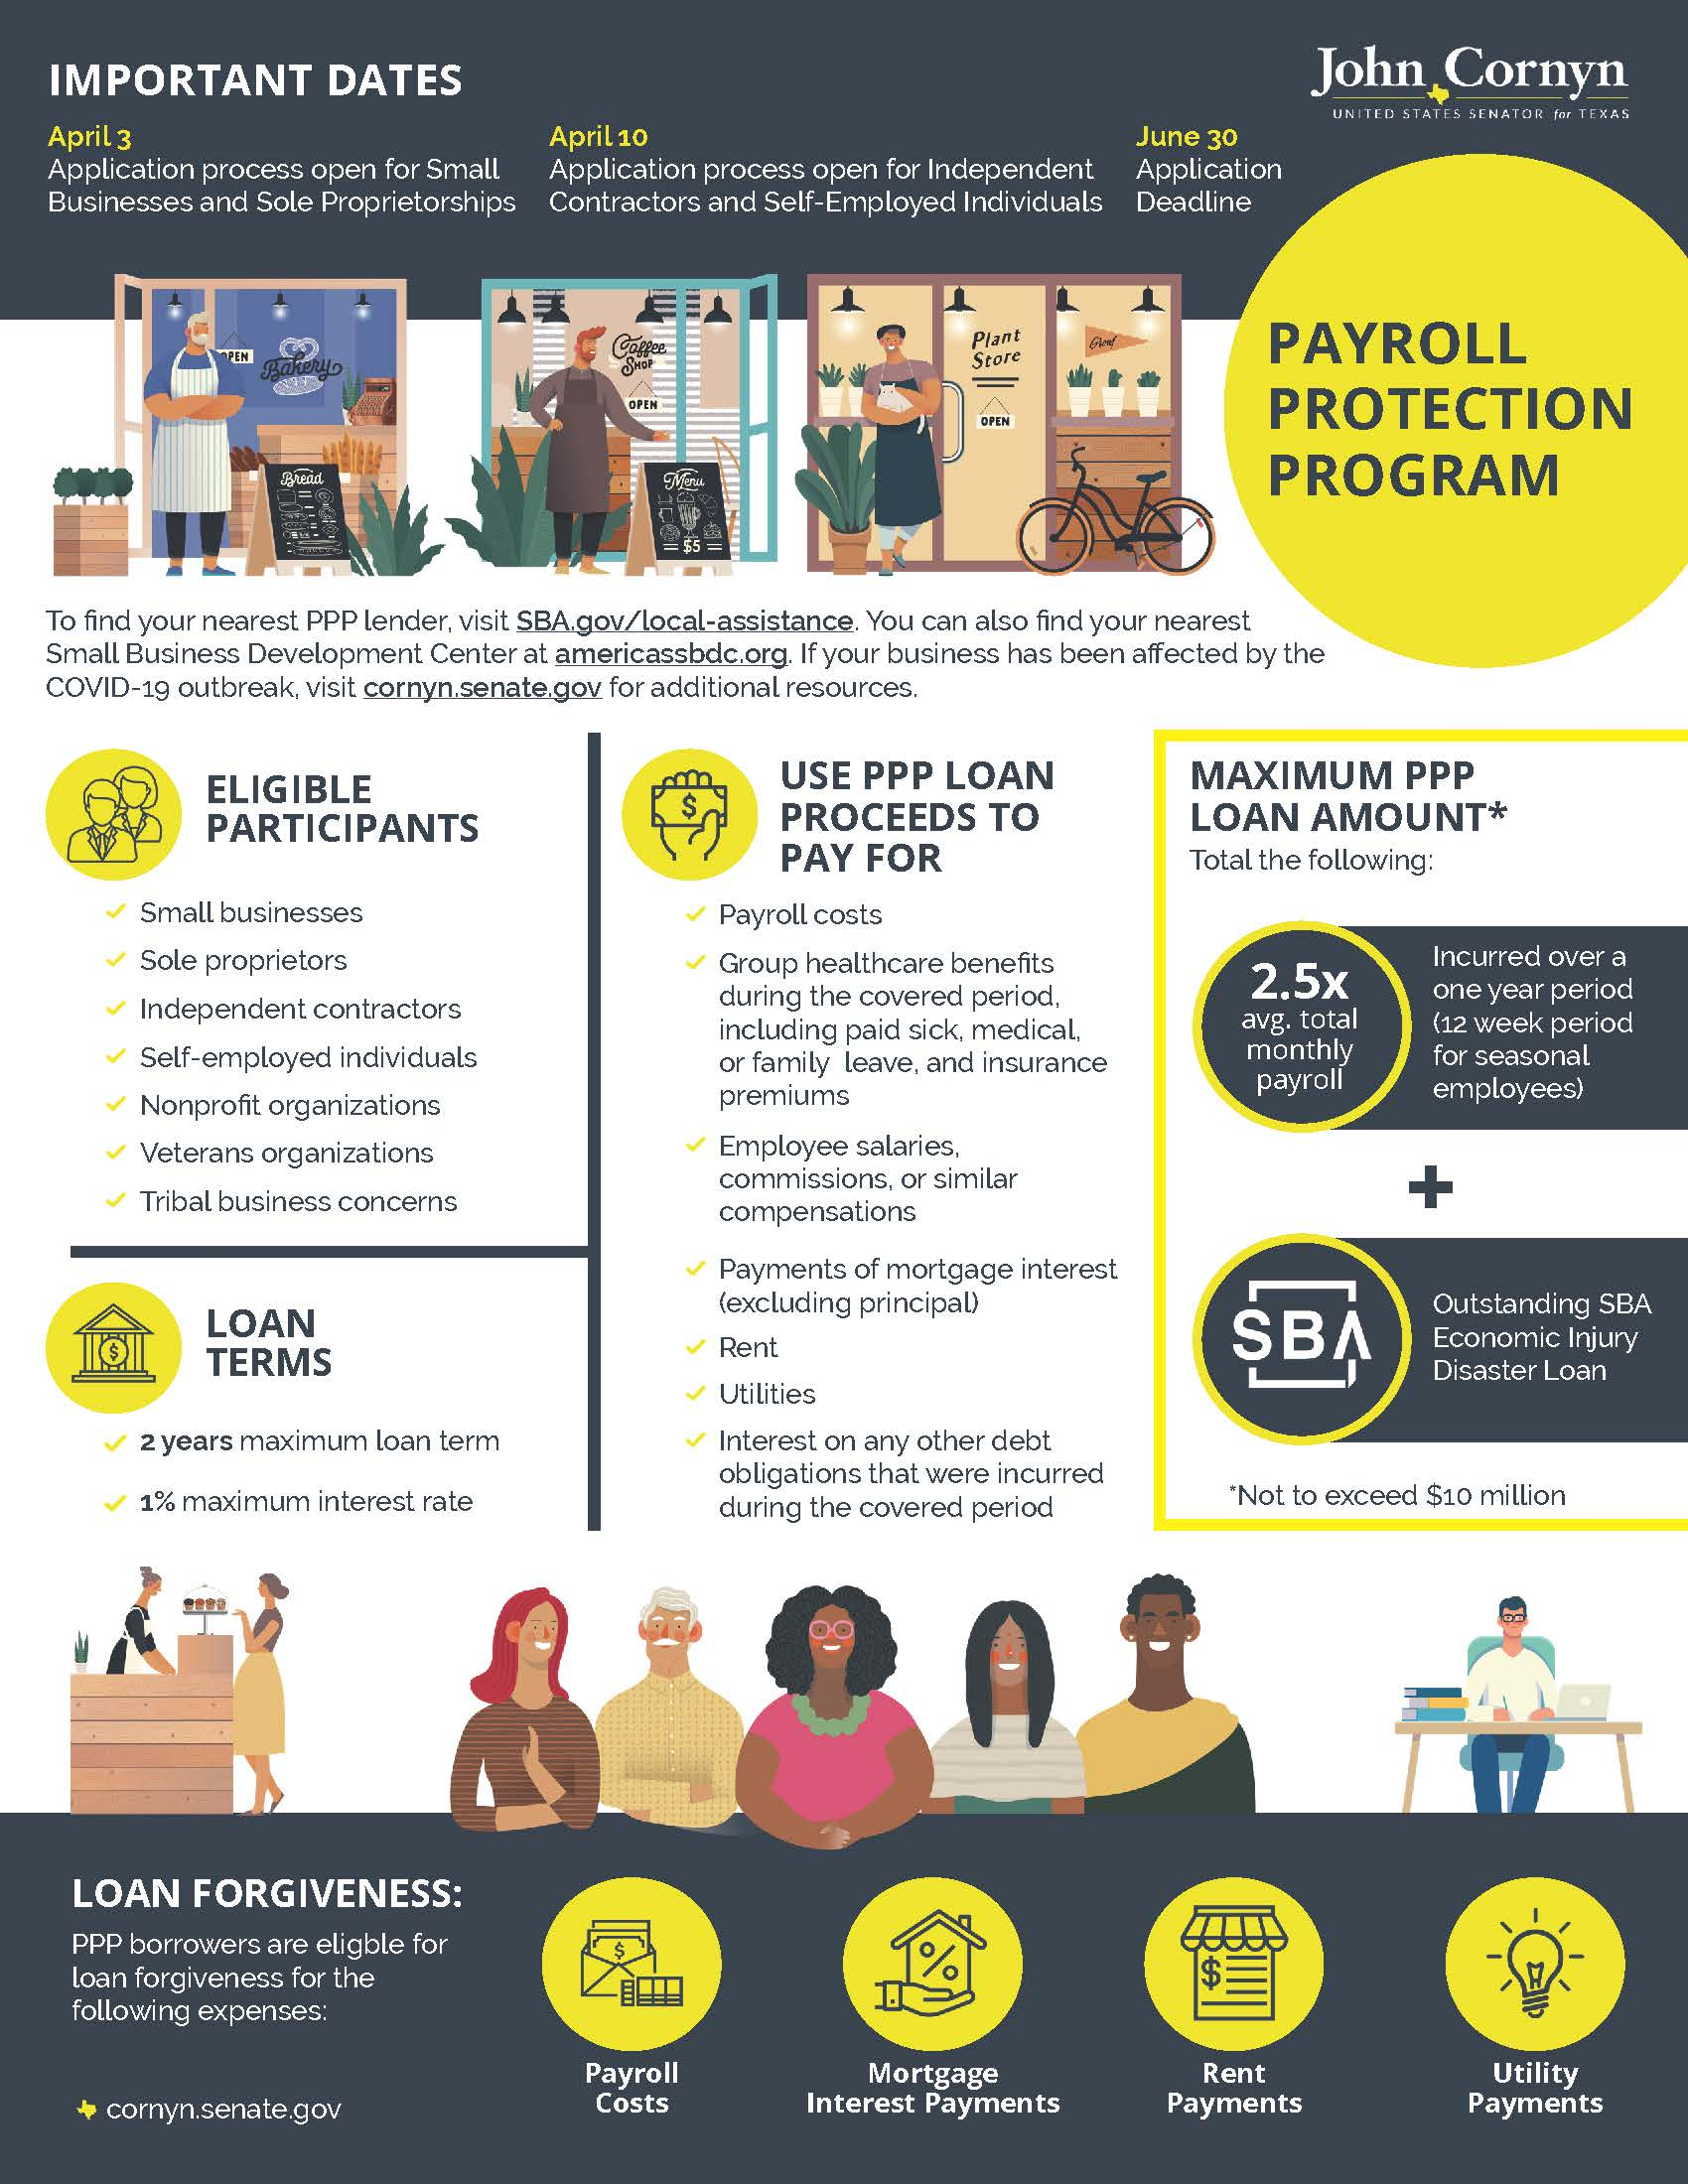 Payroll Protection Program Information from Sen. Cornyn